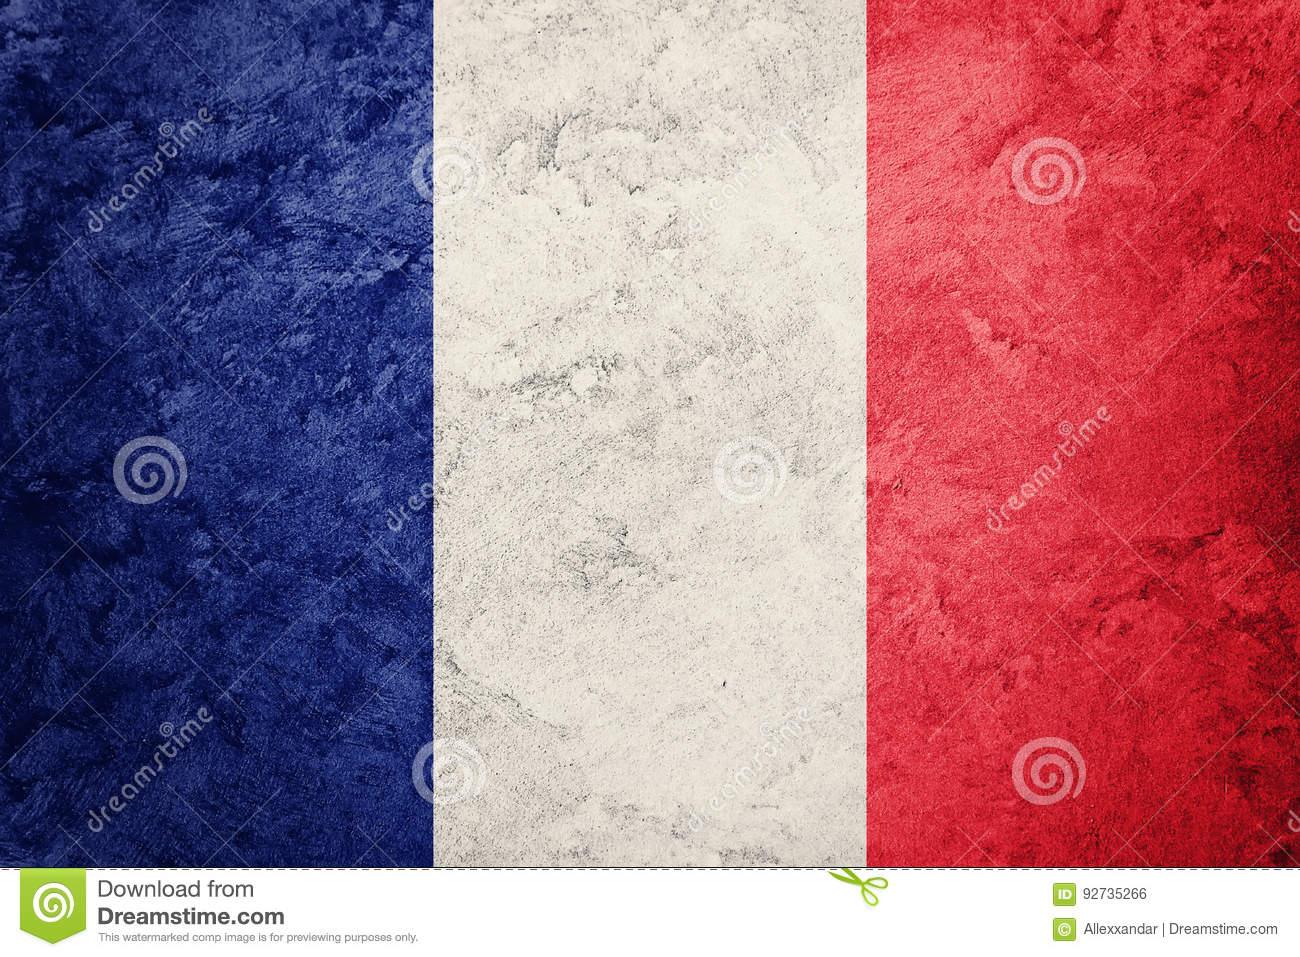 Download Grunge France Flag. France Flag With Grunge Texture. Stock Photo - Image of background, antique: 92735266